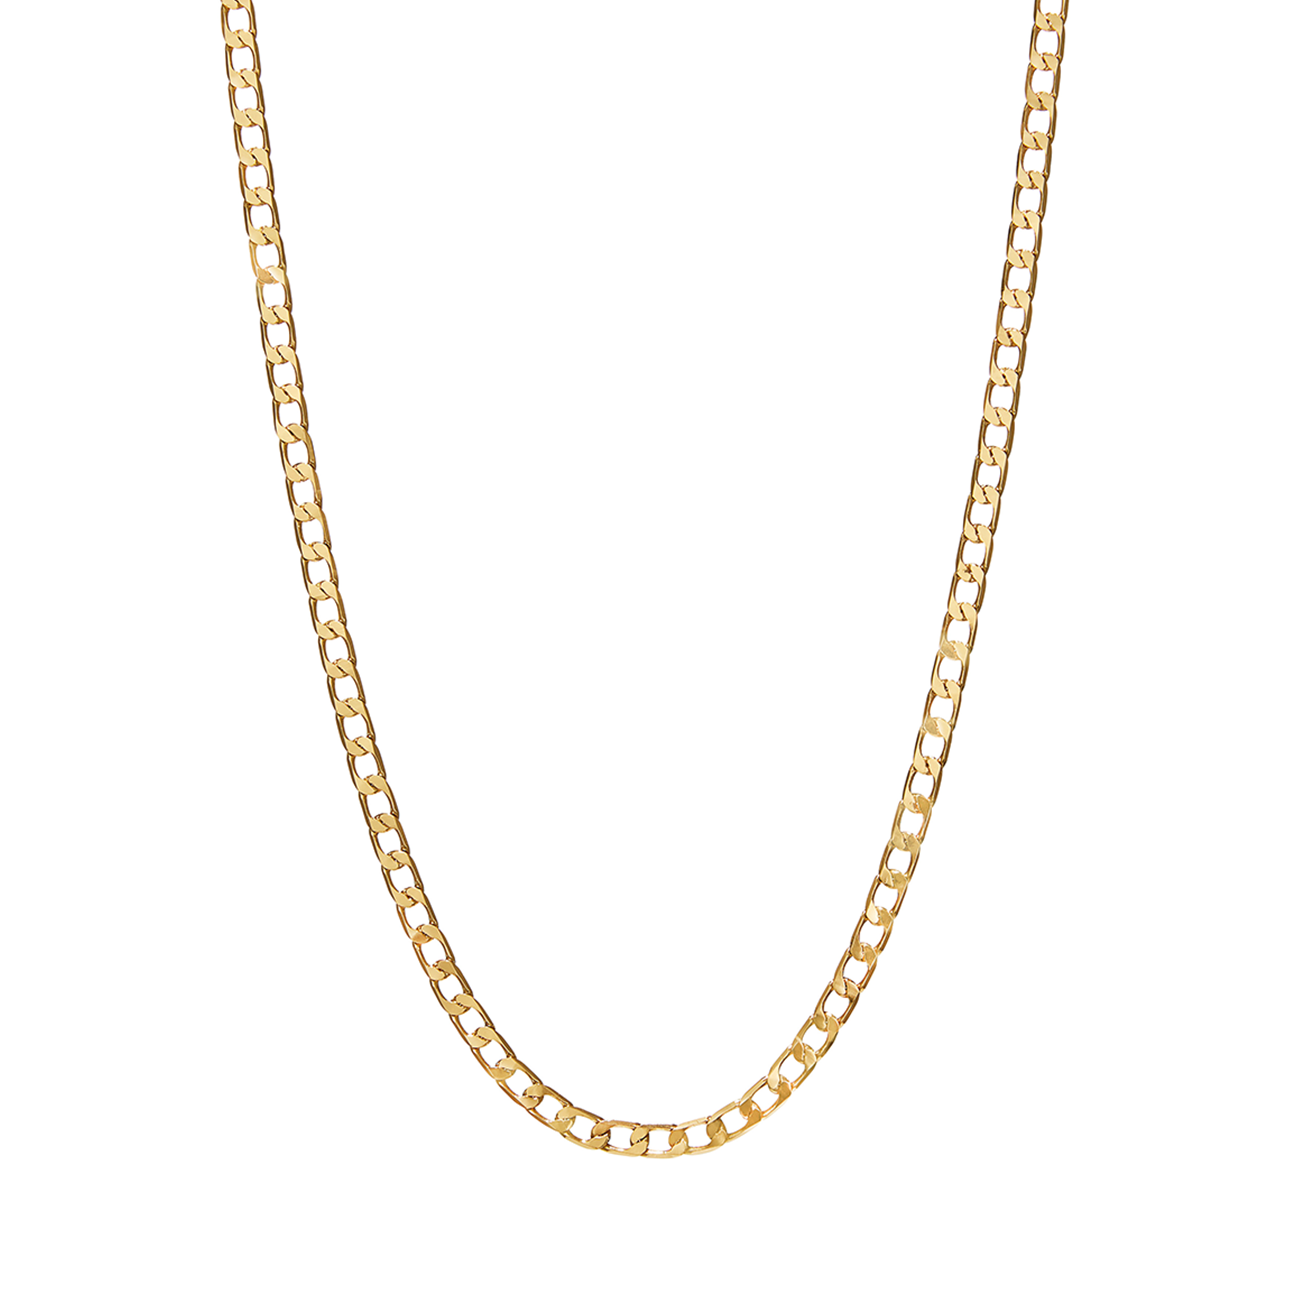 Gold The Walter flat curb chain necklace by JENNY BIRD